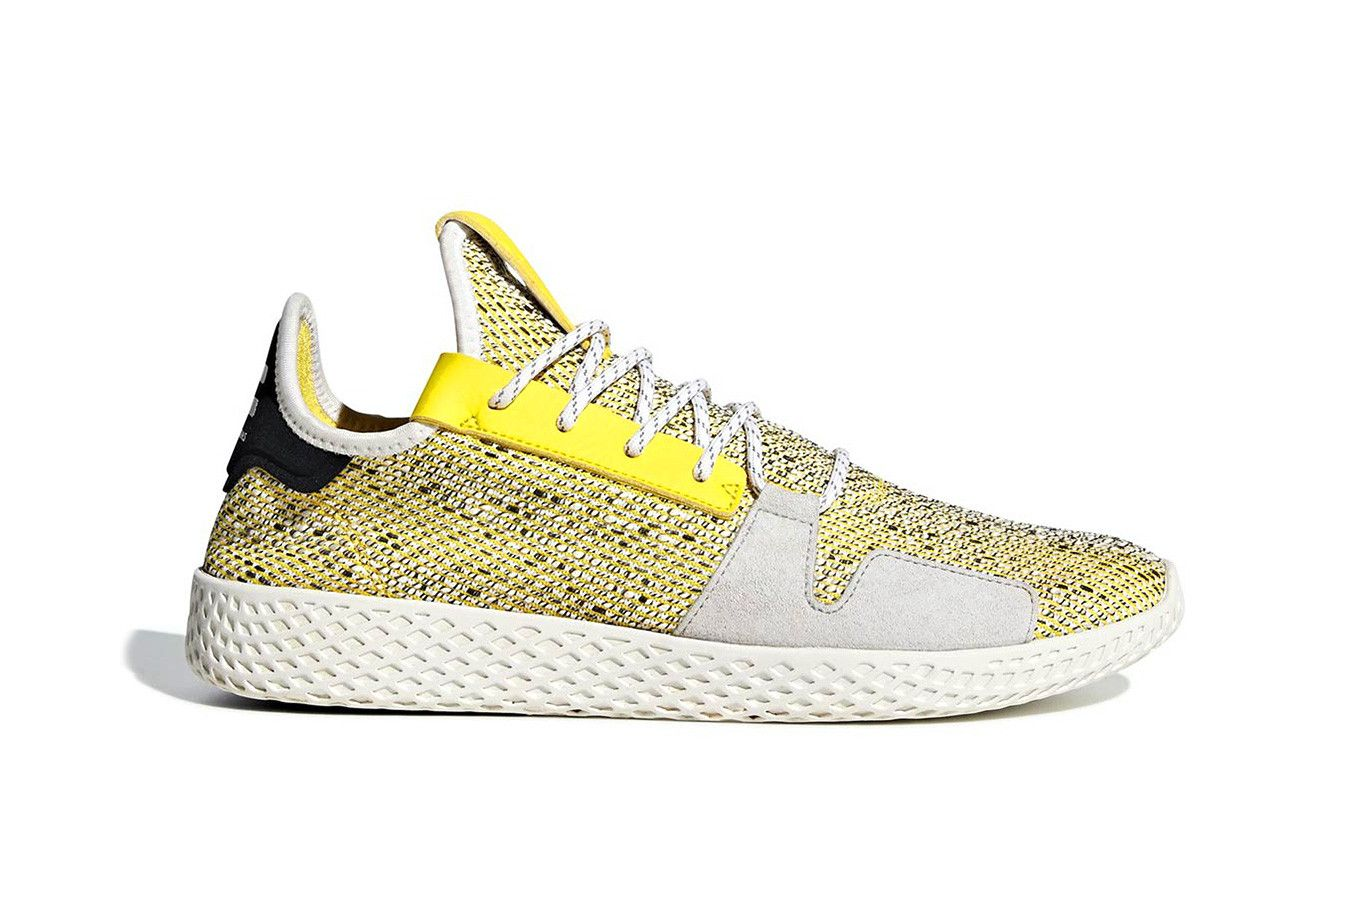 A First Look At The Pharrell X Adidas Tennis Hu V2 Adidas Tennis Pharrell Sneakers